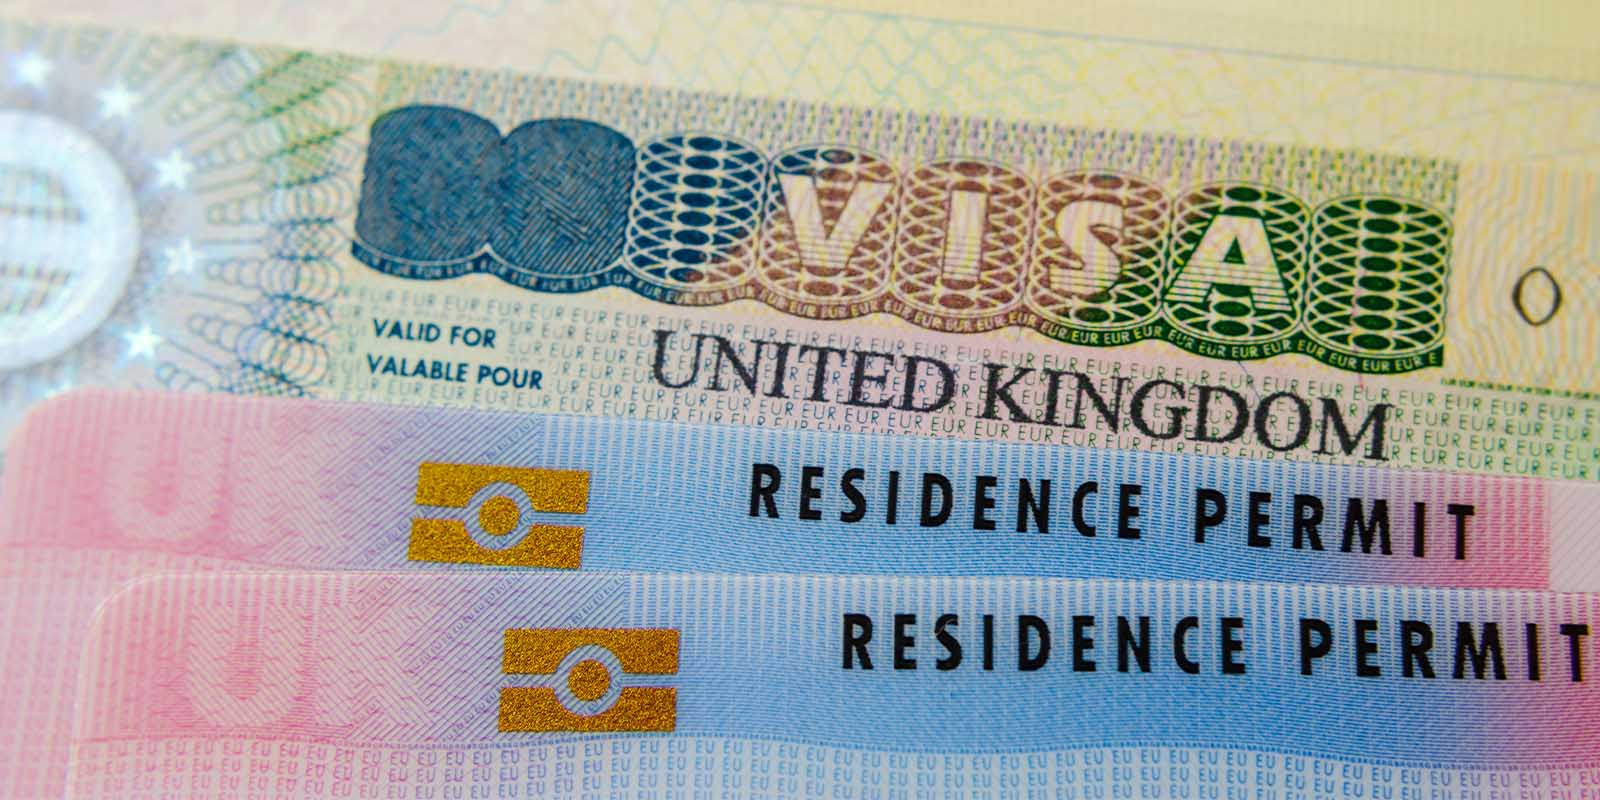 Visa from the United kingdom and European residence cards